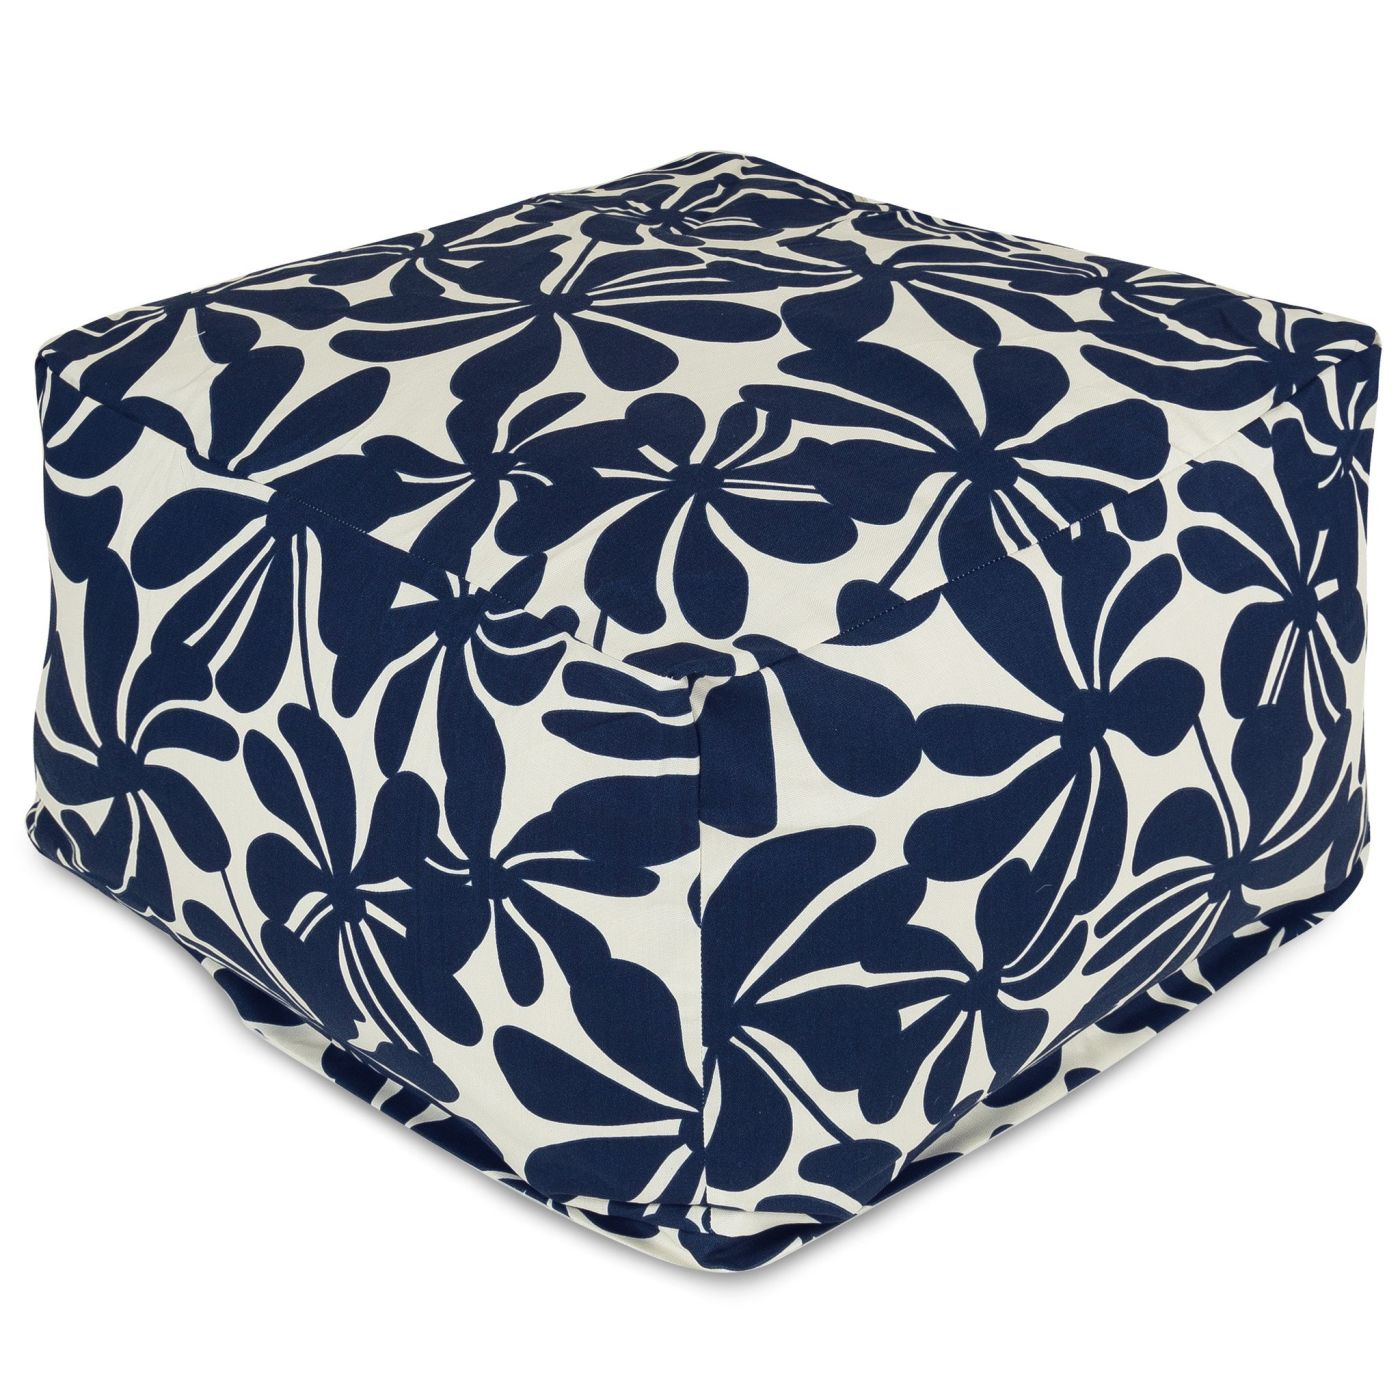 amazing deal on majestic home 85907220218 navy blue plantation large ottoman at contemporary. Black Bedroom Furniture Sets. Home Design Ideas